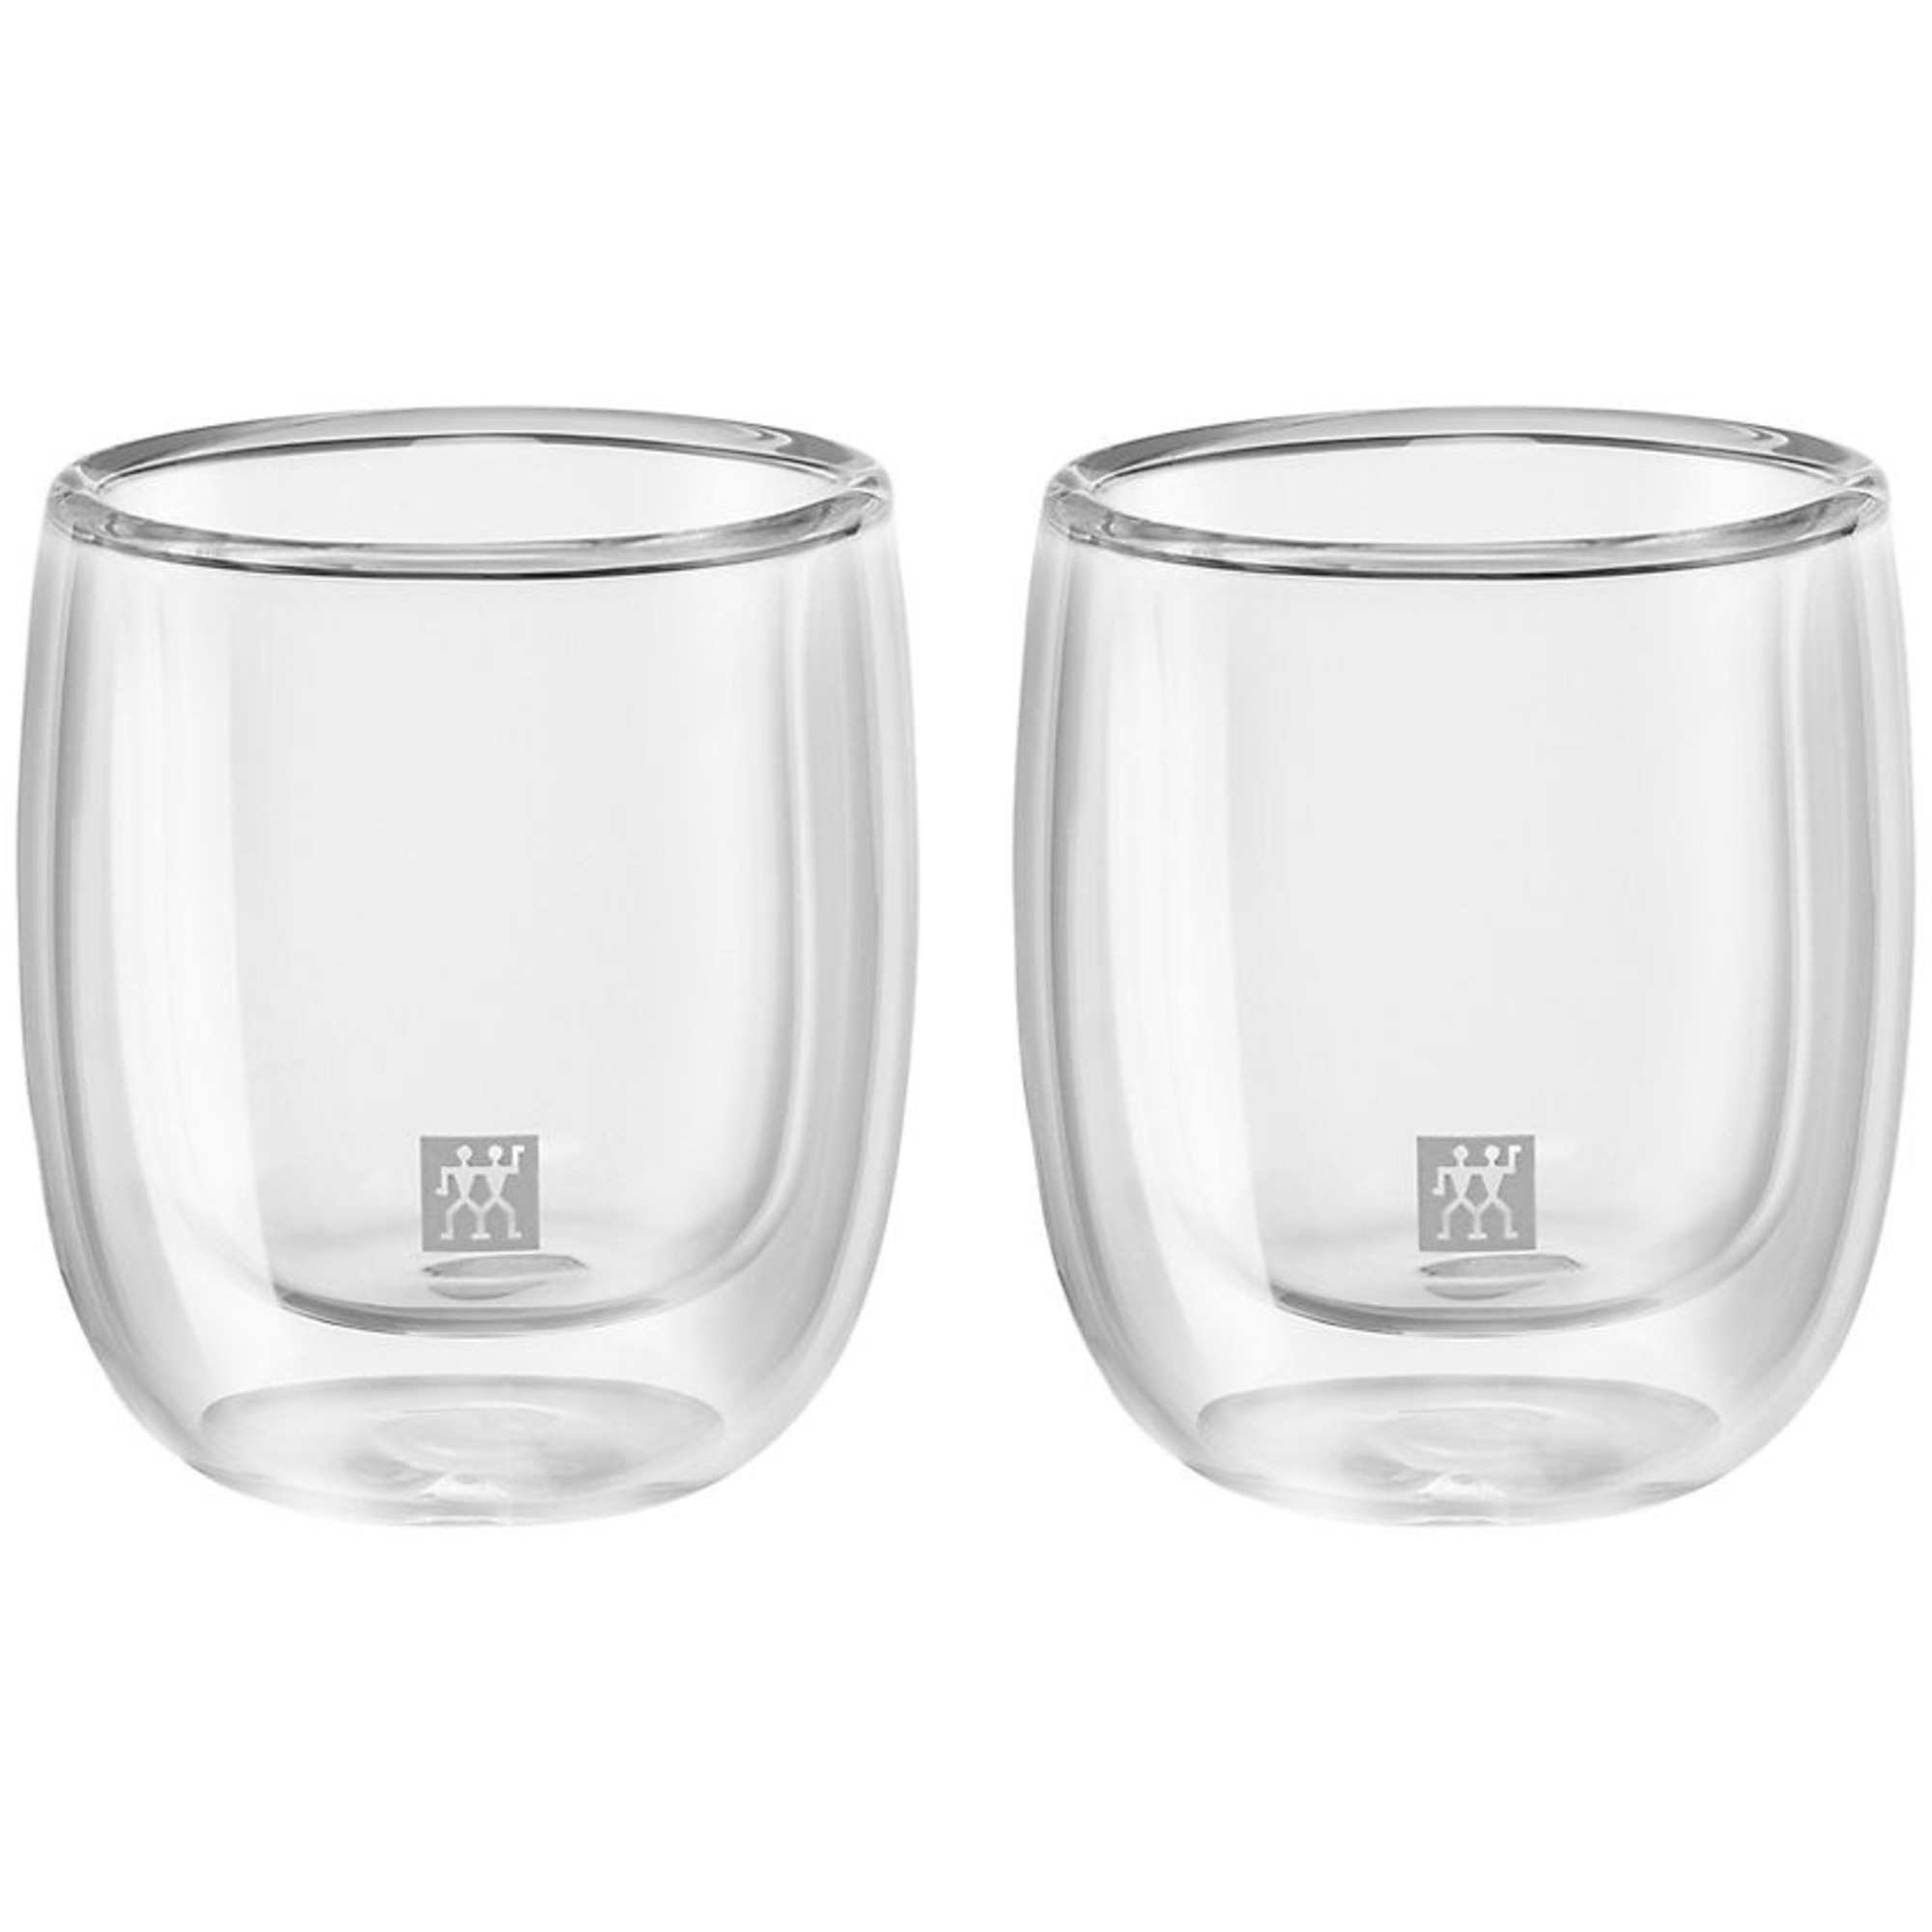 Zwilling Sorrento Espresso Glas 2 pack 80 ml